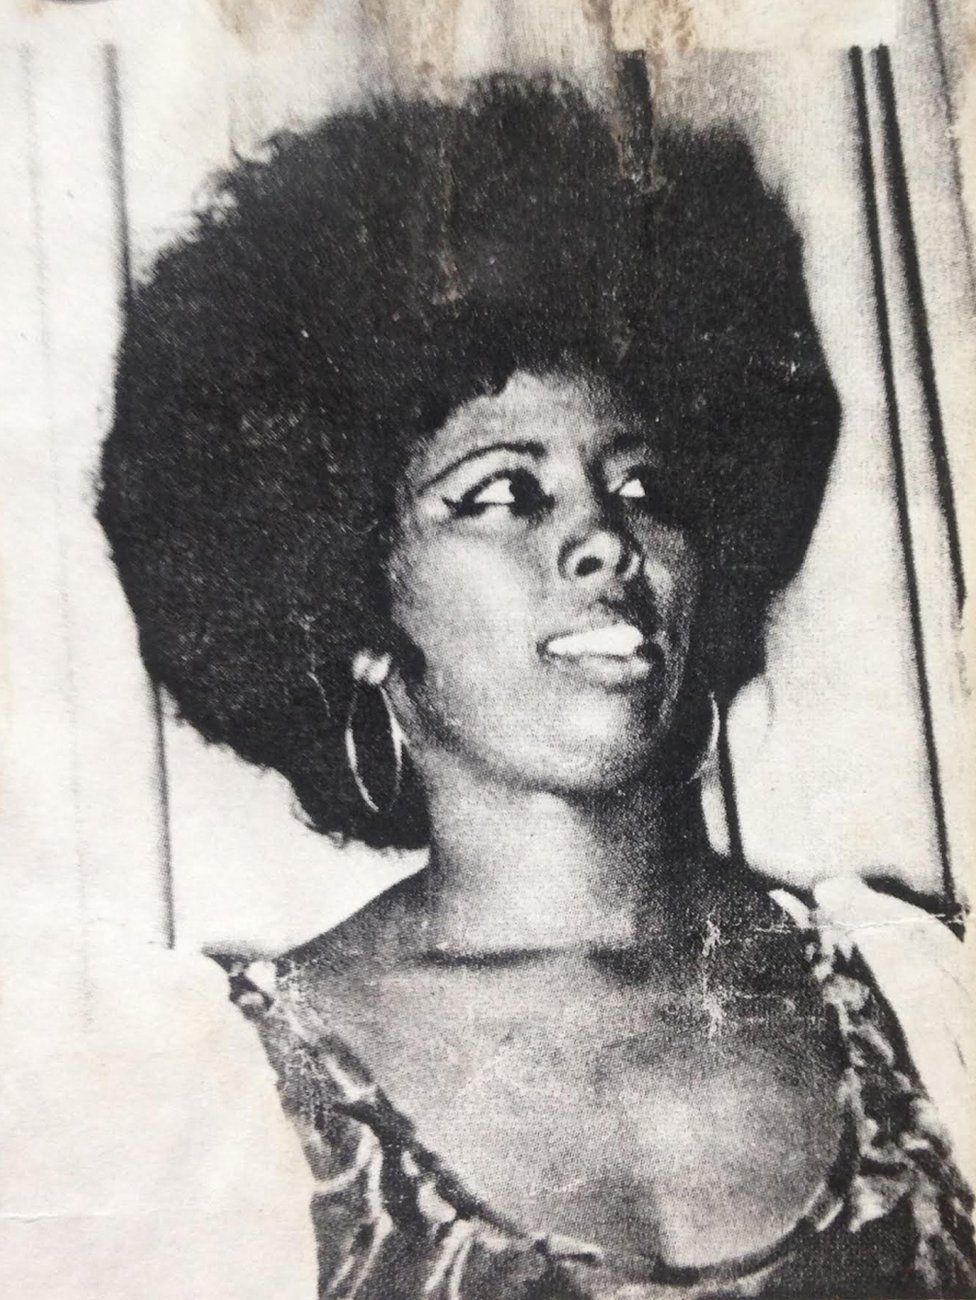 A young woman in 1970s Somalia